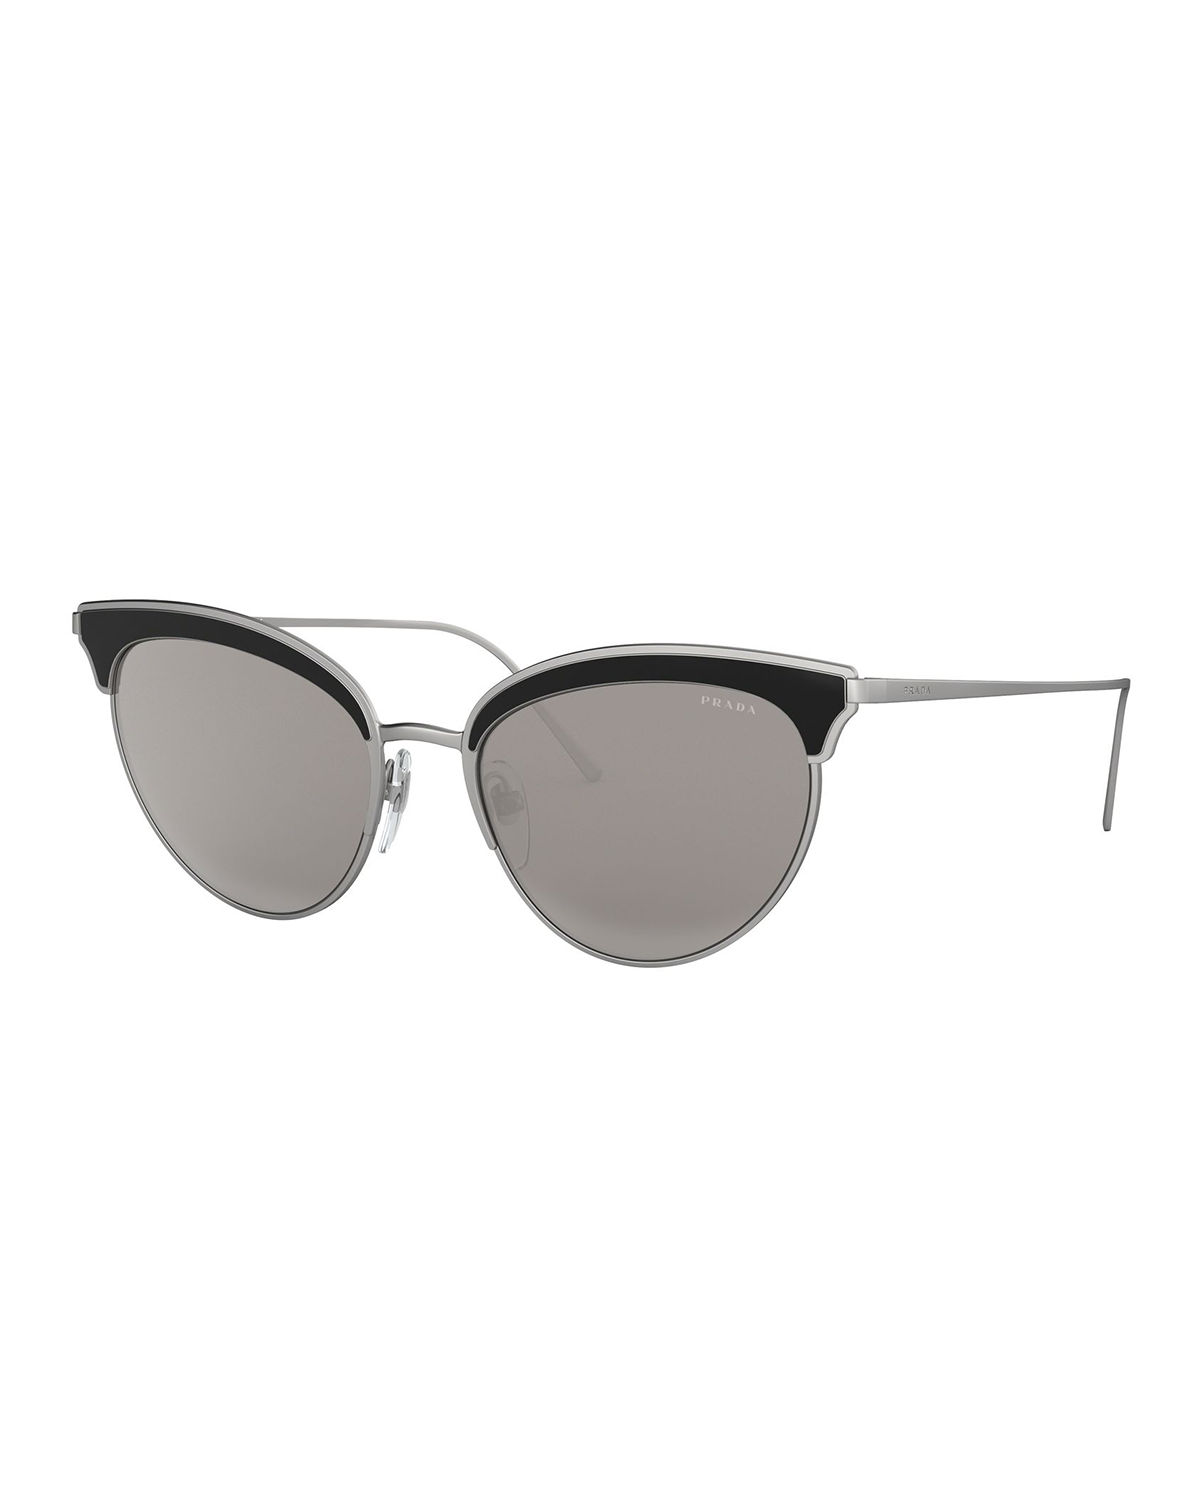 85f079a2953 Prada Metal Cat-Eye Sunglasses w  Contrast Brows